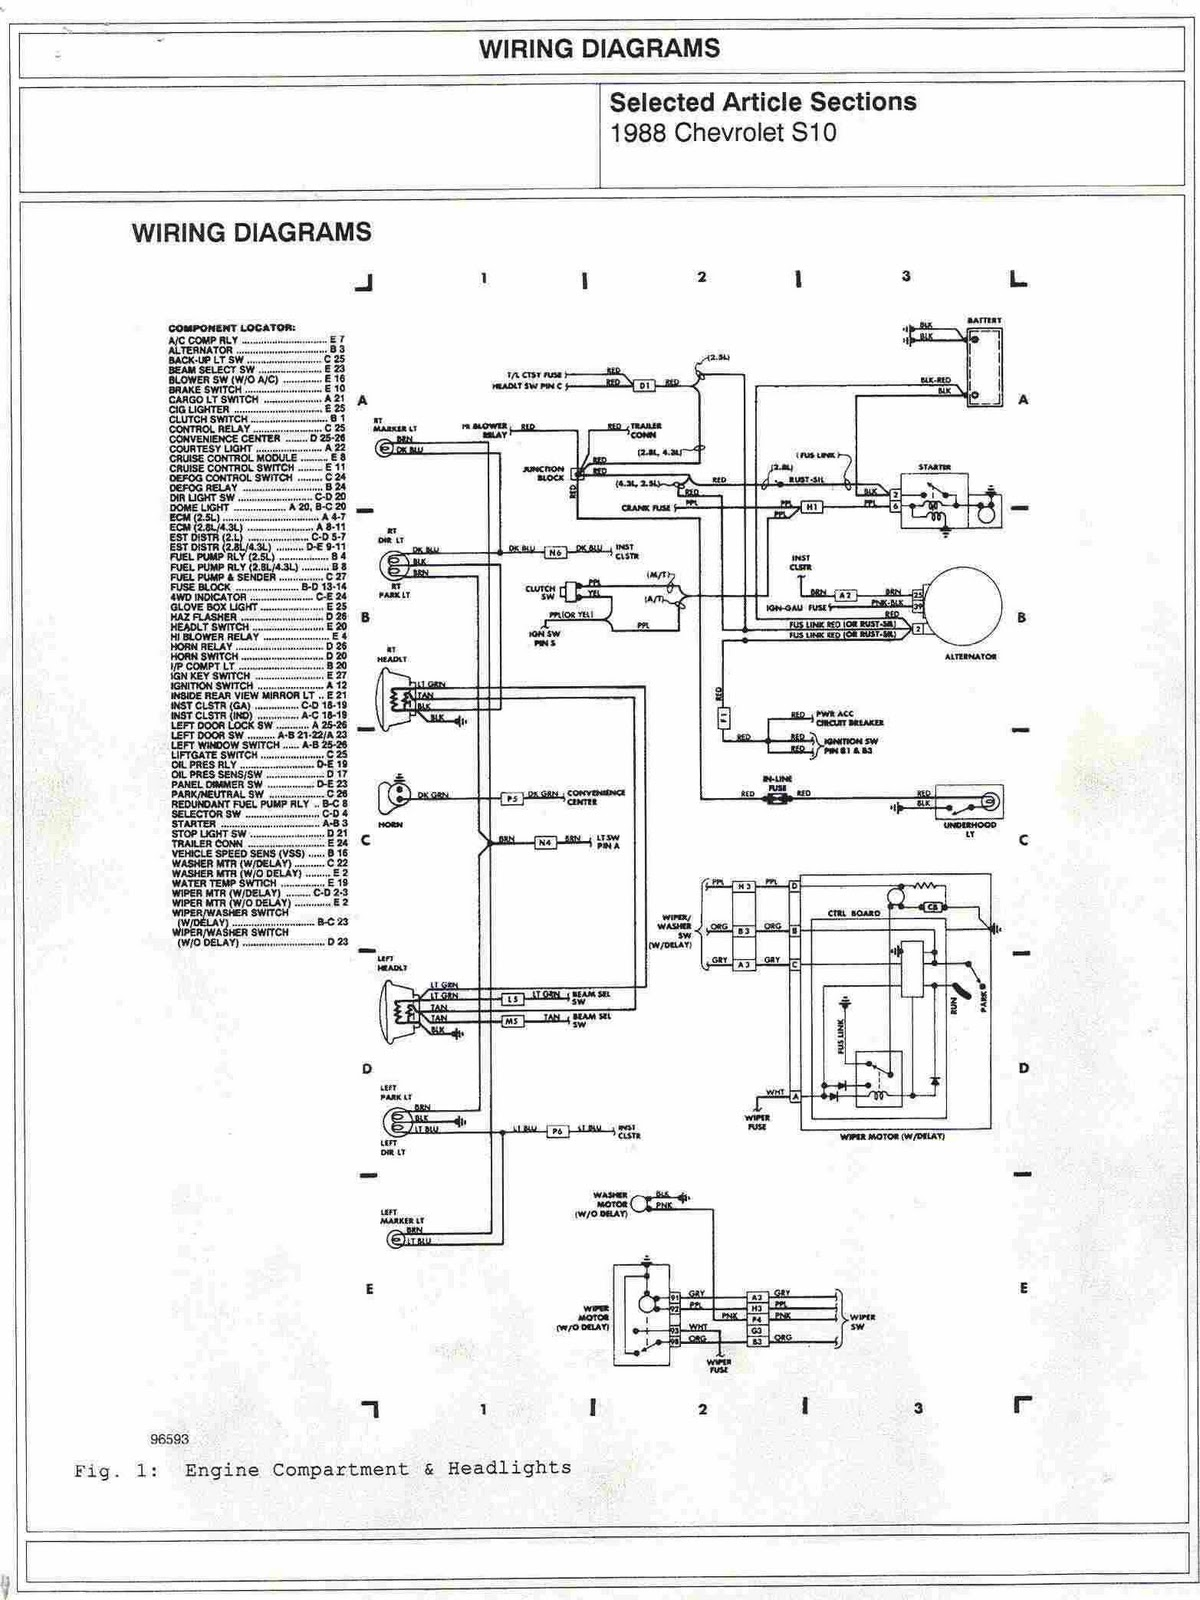 1991 Chevy Ignition Switch Wiring Diagram Schematics Diagrams 1983 Headlight Dimmer 1993 U2022 Rh Seniorlivinguniversity Co Typical 1999 Chevrolet